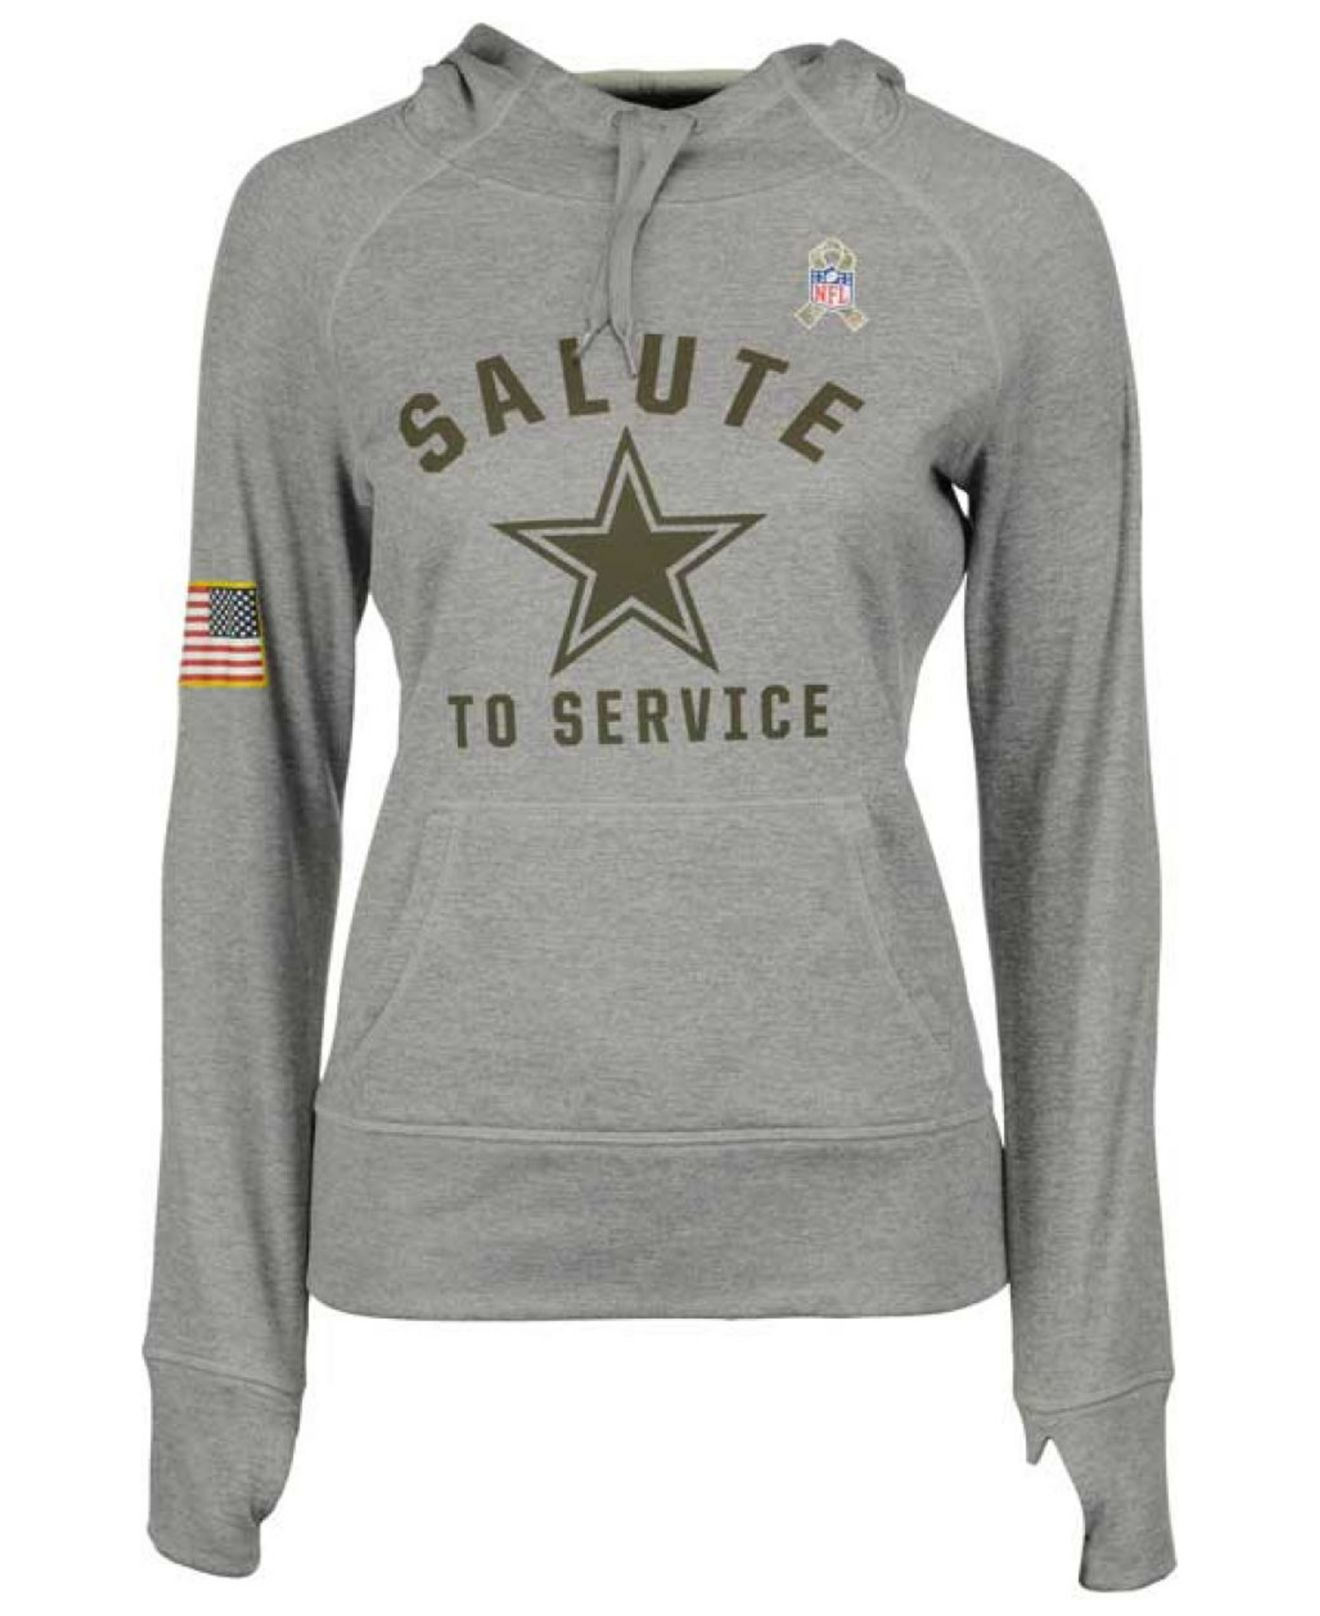 6bac2376e Lyst - Nike Women s Dallas Cowboys Salute To Service Hoodie in Gray